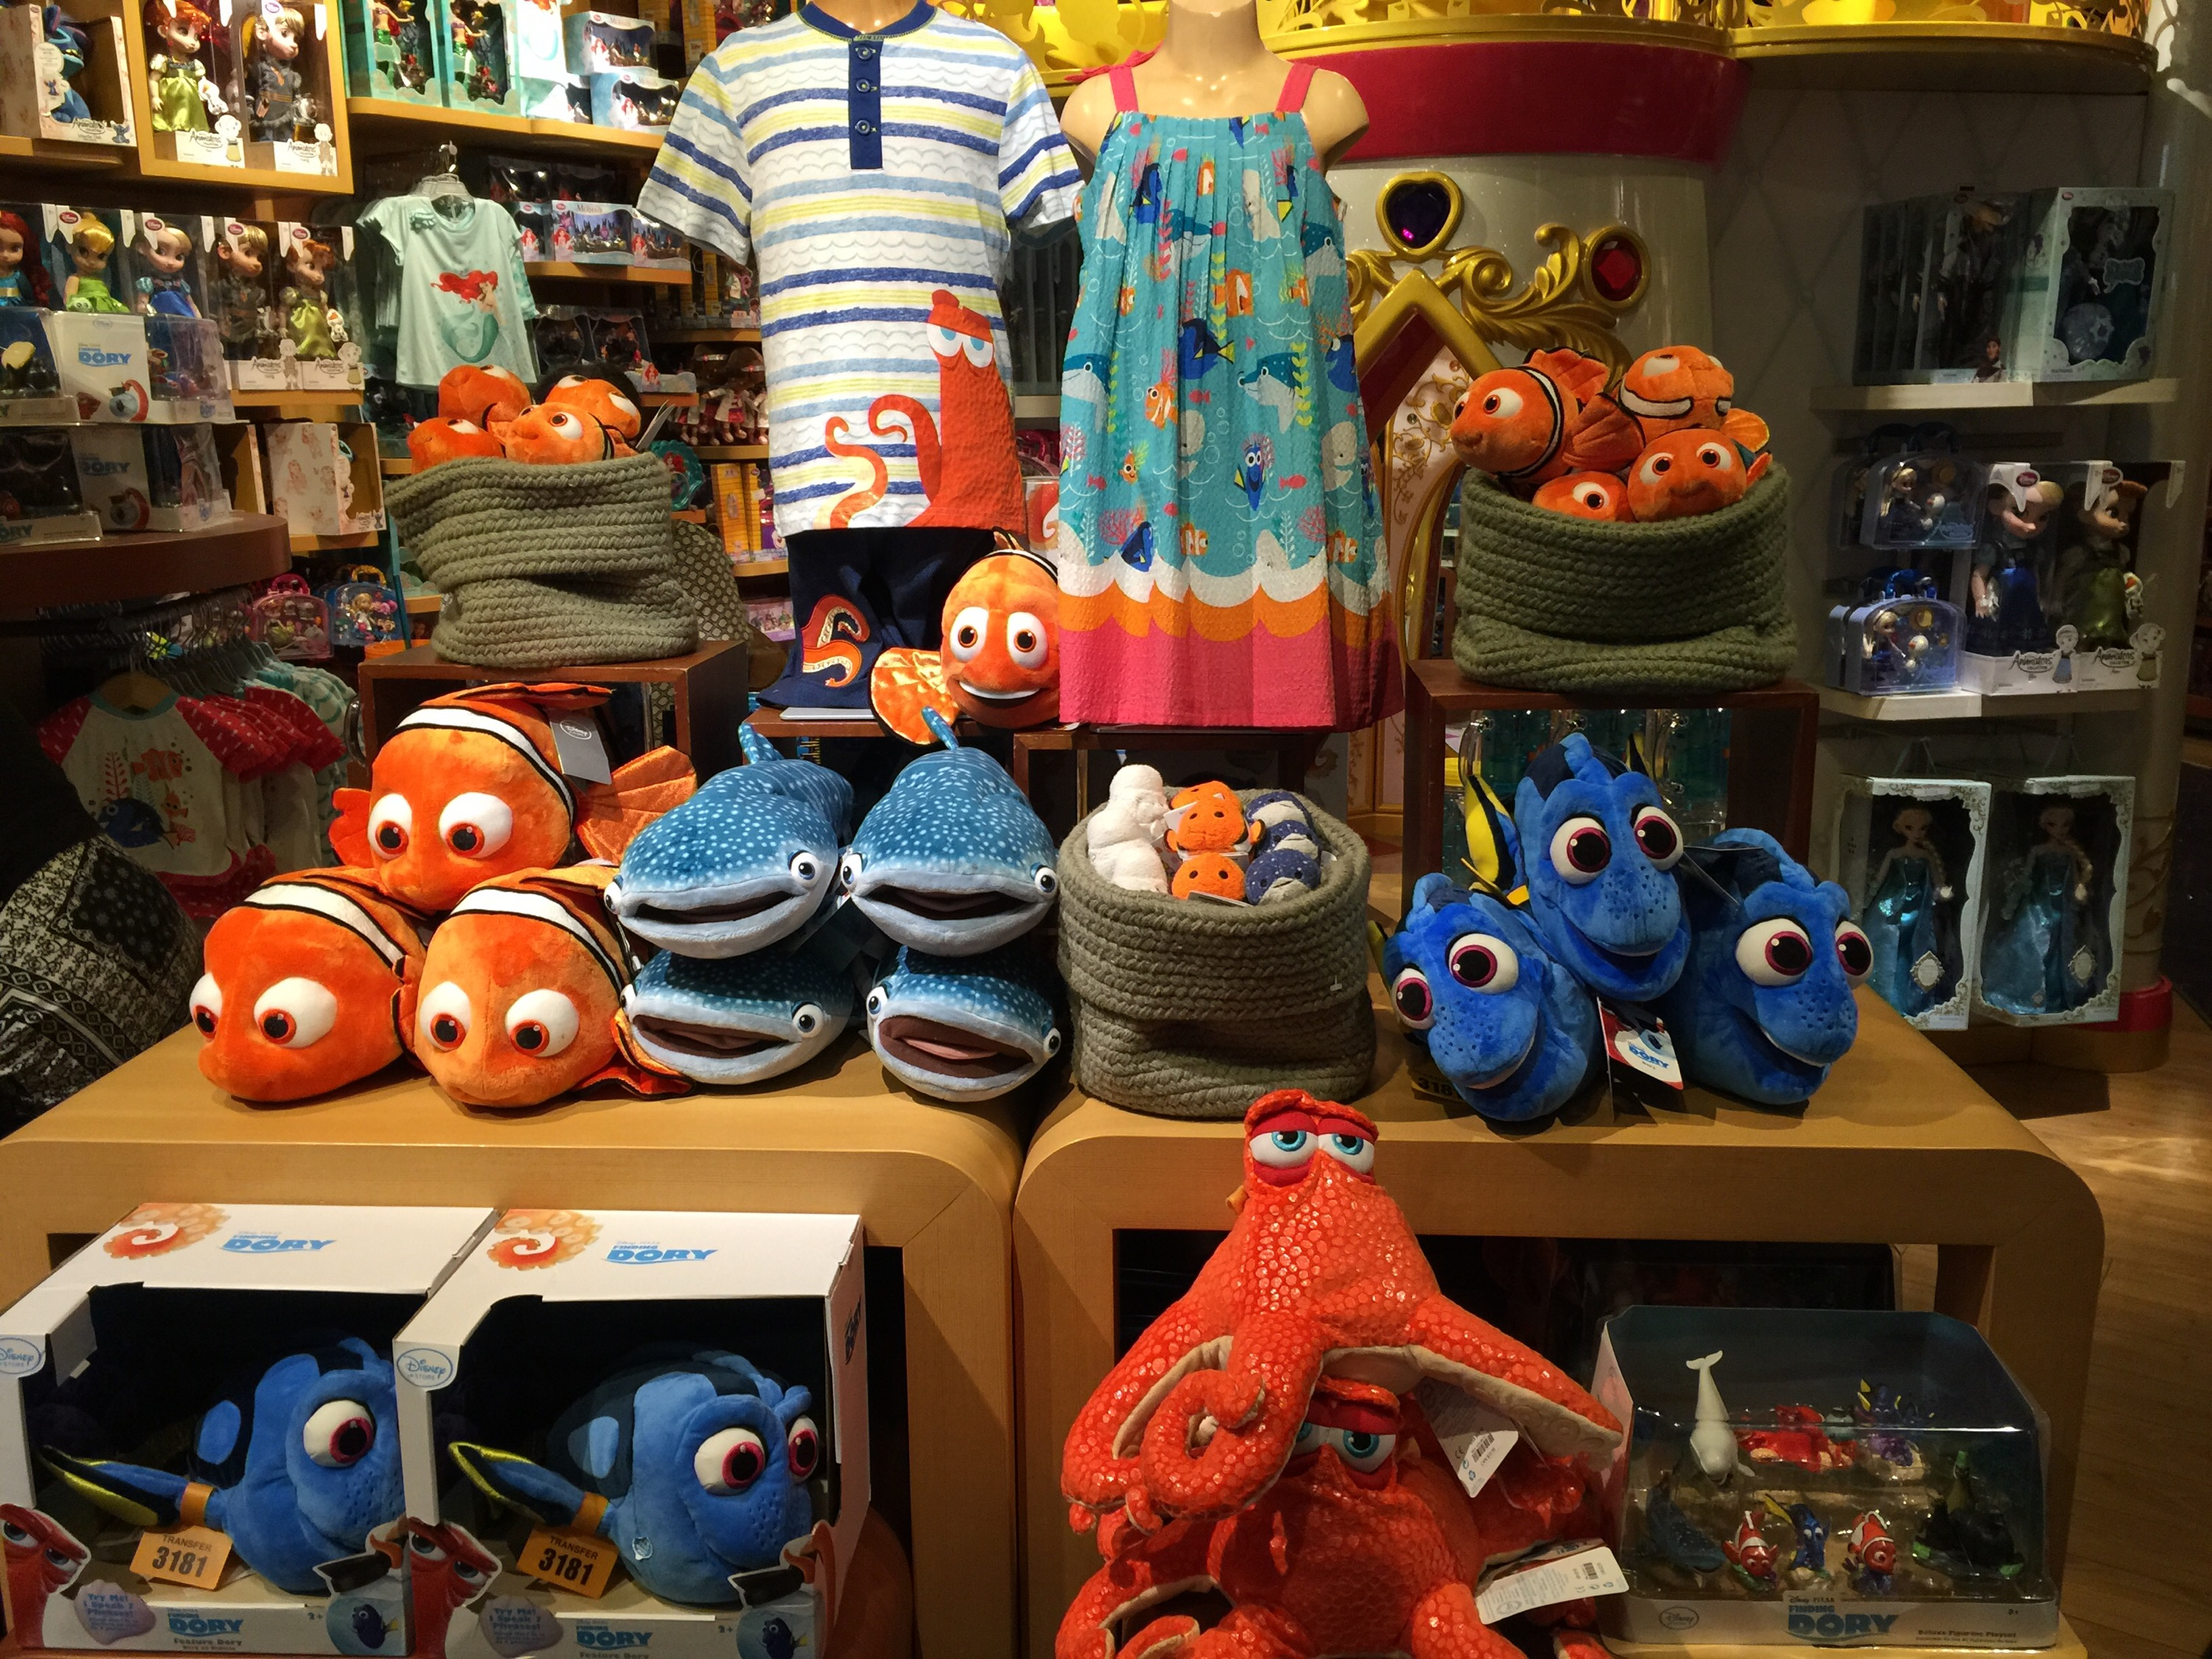 Cozy Rooms Video Finding Dory Toys Bathing Suits Amp Plush Galore